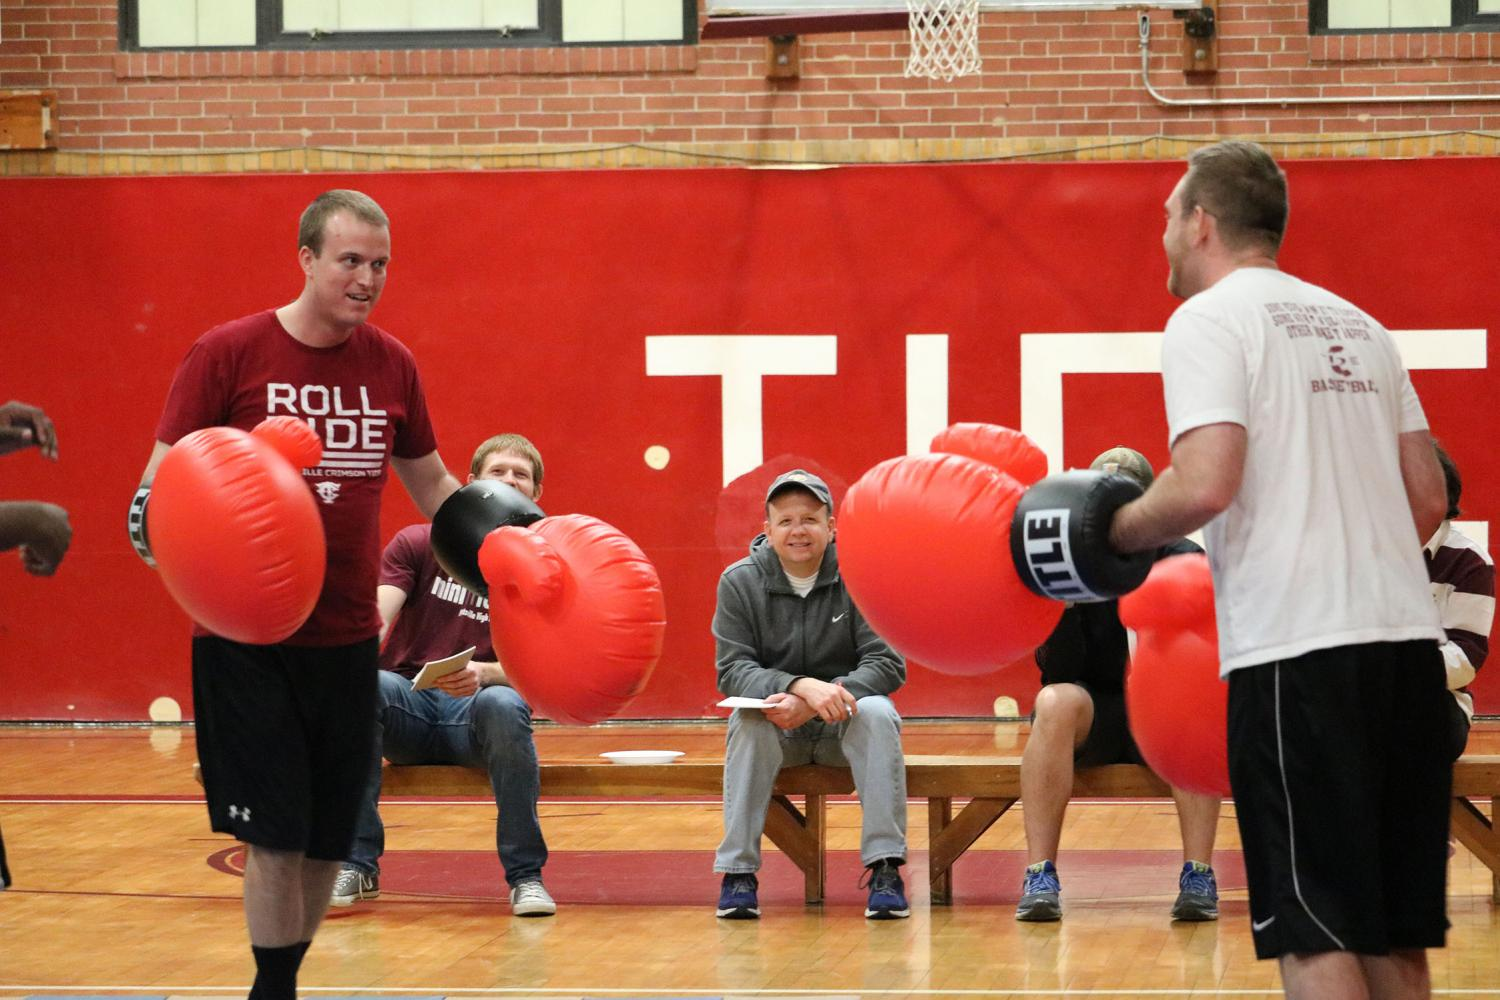 FIGHT-+Mr.+Nathan+Halenar+and+Mr.+Cody+Blankenhorn+help+fight+against+childhood+cancer+by+having+a+boxing+match+as+part+of+the+Mini-THON+fundraiser.+Students+cheered+on+their+favorite+teacher.+At+the+end+of+the+fight%2C+Mr.+Blankenhorn+won.+